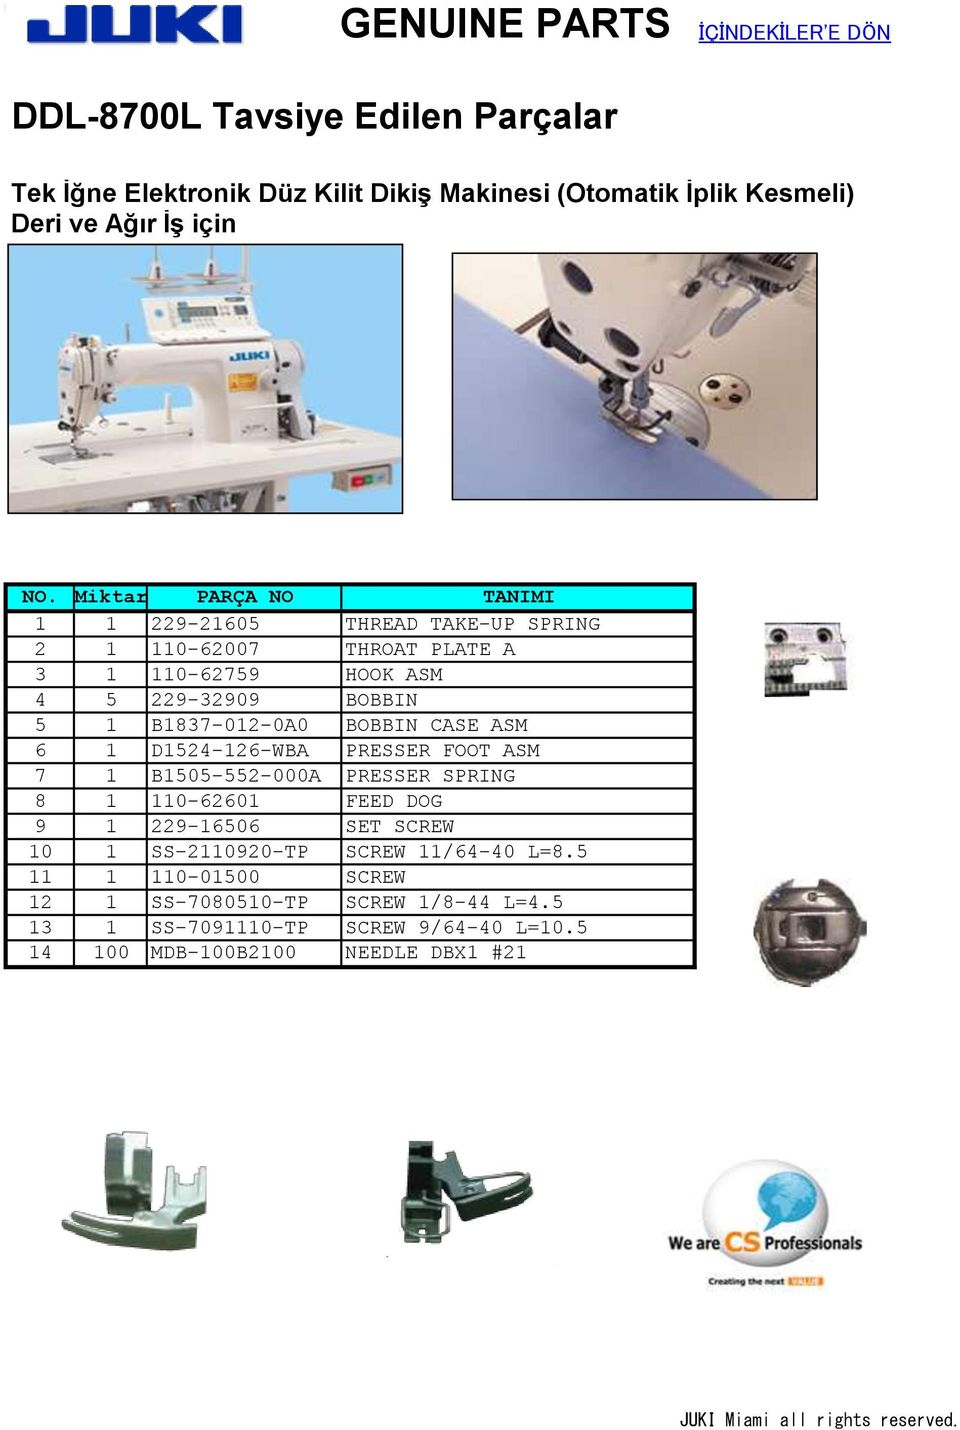 FOOT ASM 7 1 B1505-552-000A PRESSER SPRING 8 1 110-62601 FEED DOG 9 1 229-16506 SET SCREW 10 1 SS-2110920-TP SCREW 11/64-40 L=8.